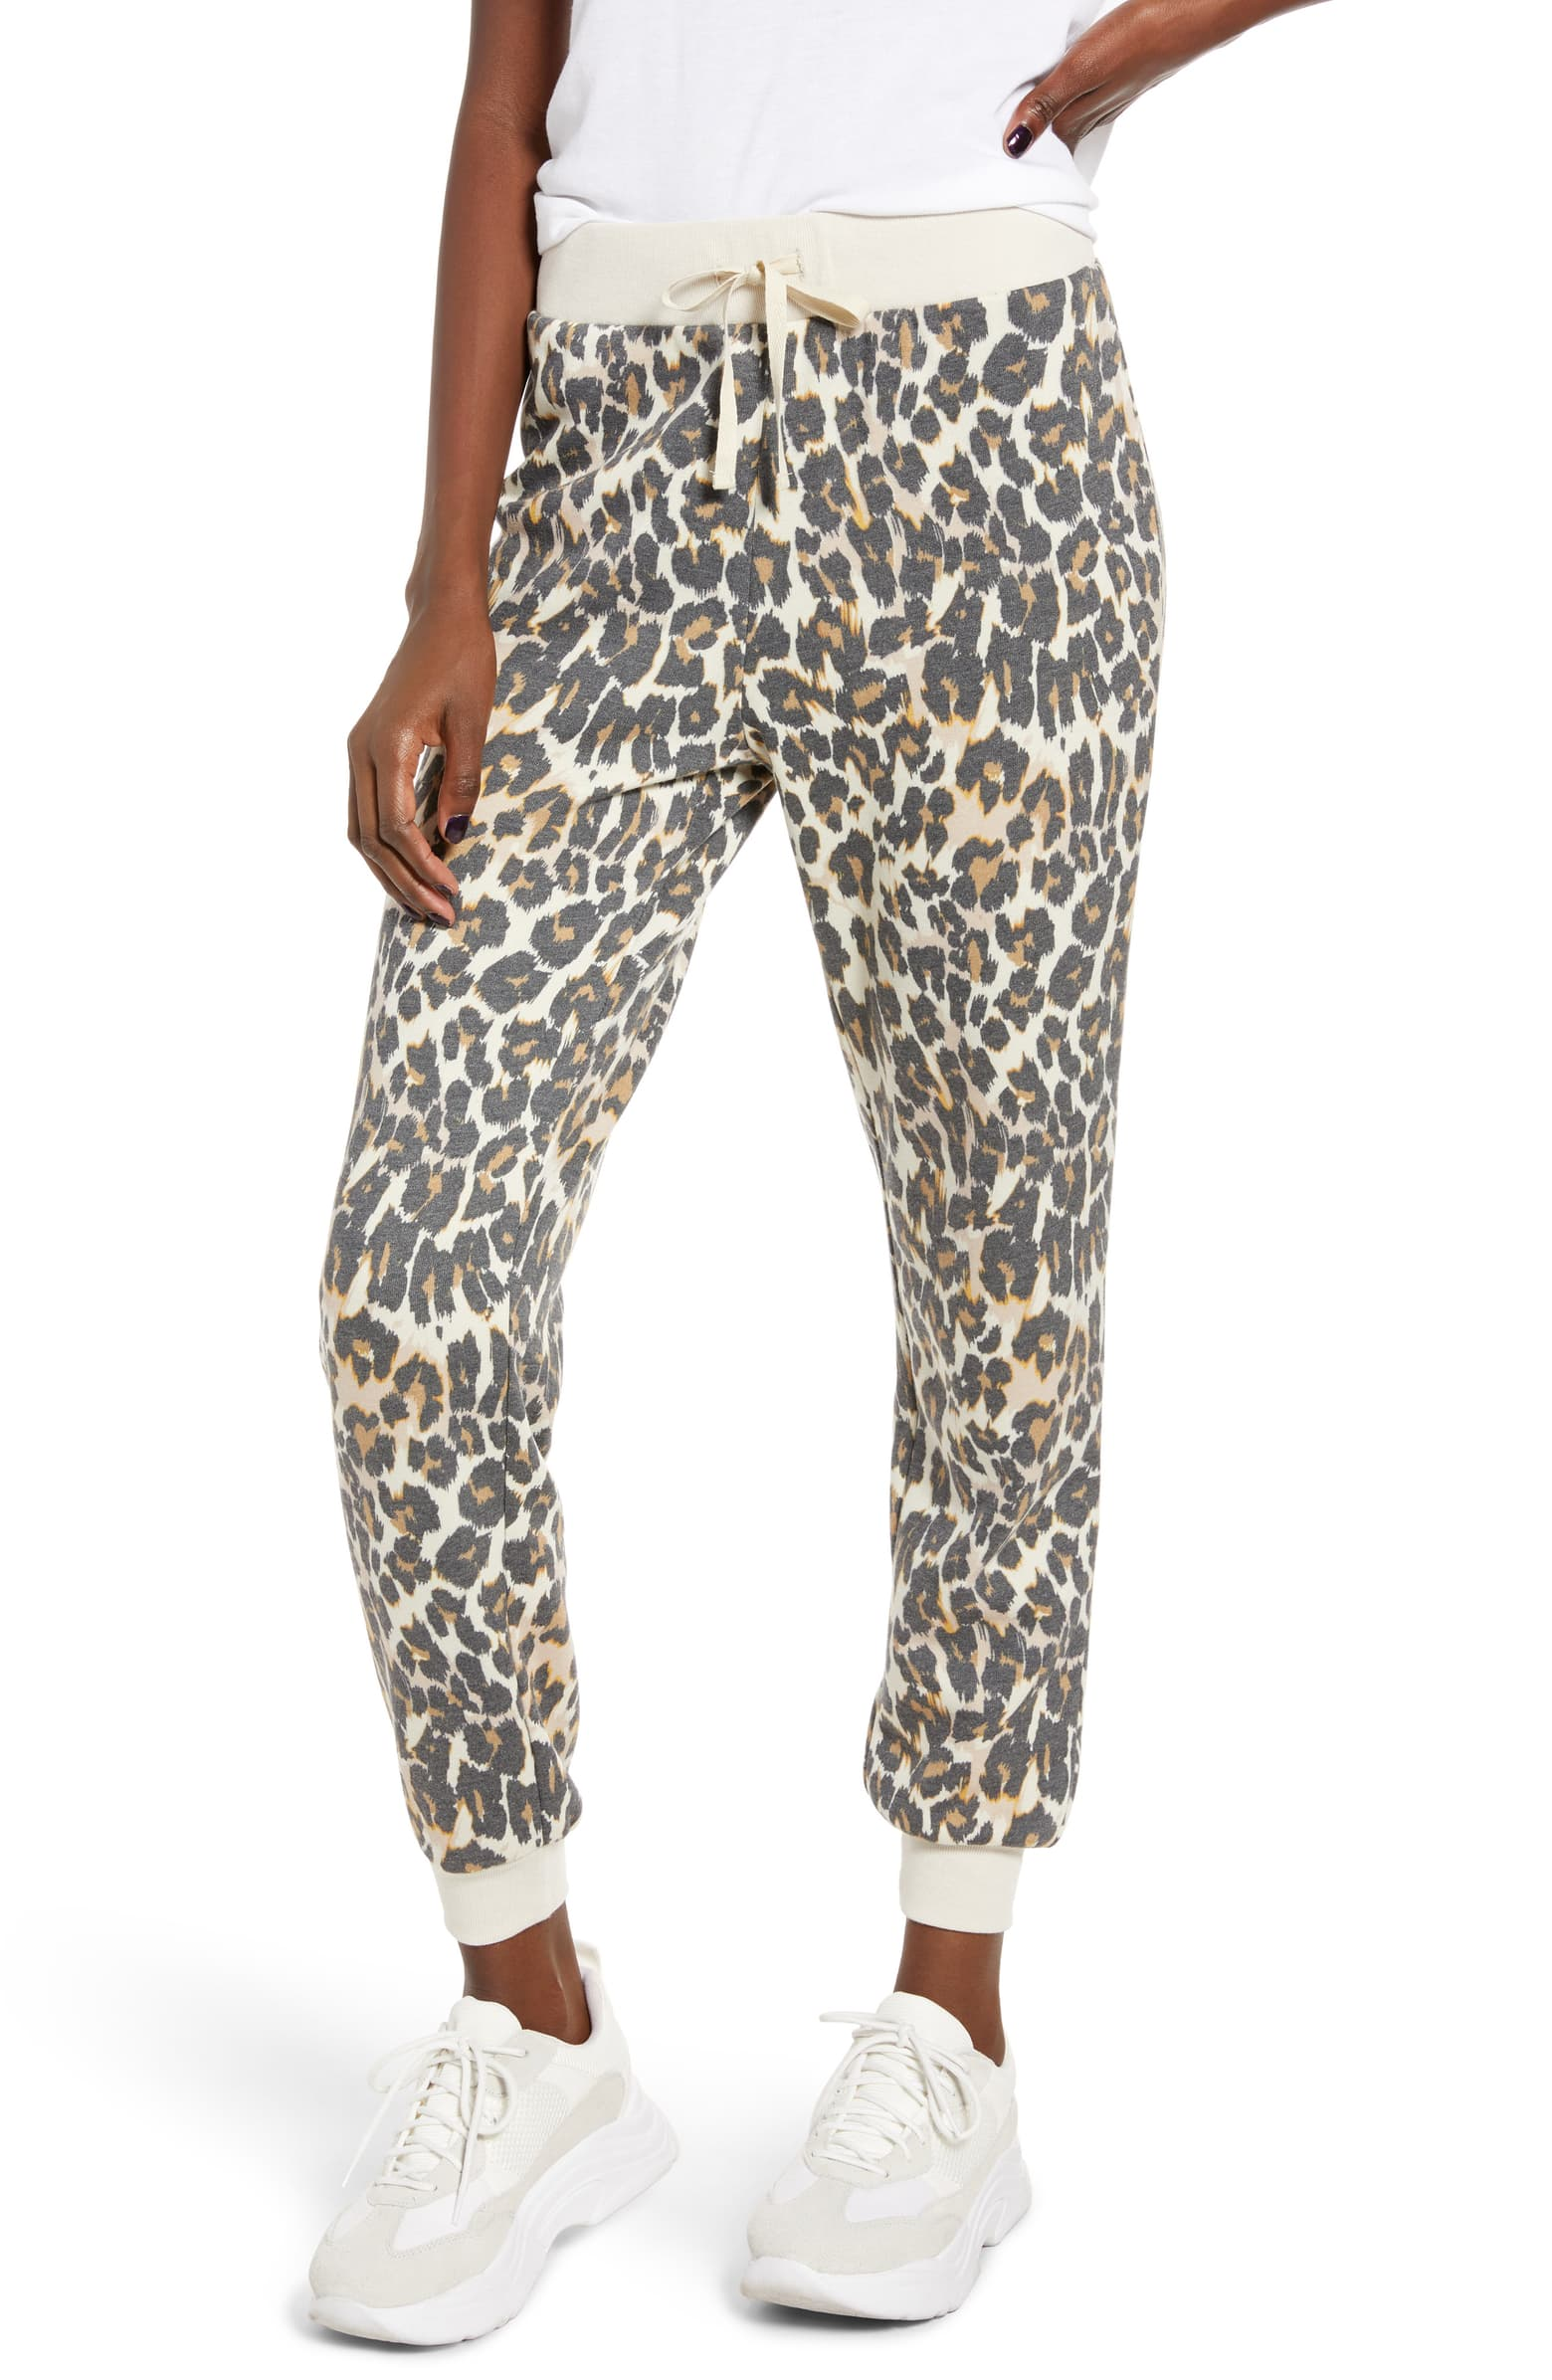 Nordstrom Anniversary Sale - #NSALE - Nordstrom Sale - Fall Fashion - Women's Fashion - Sabby Style-15